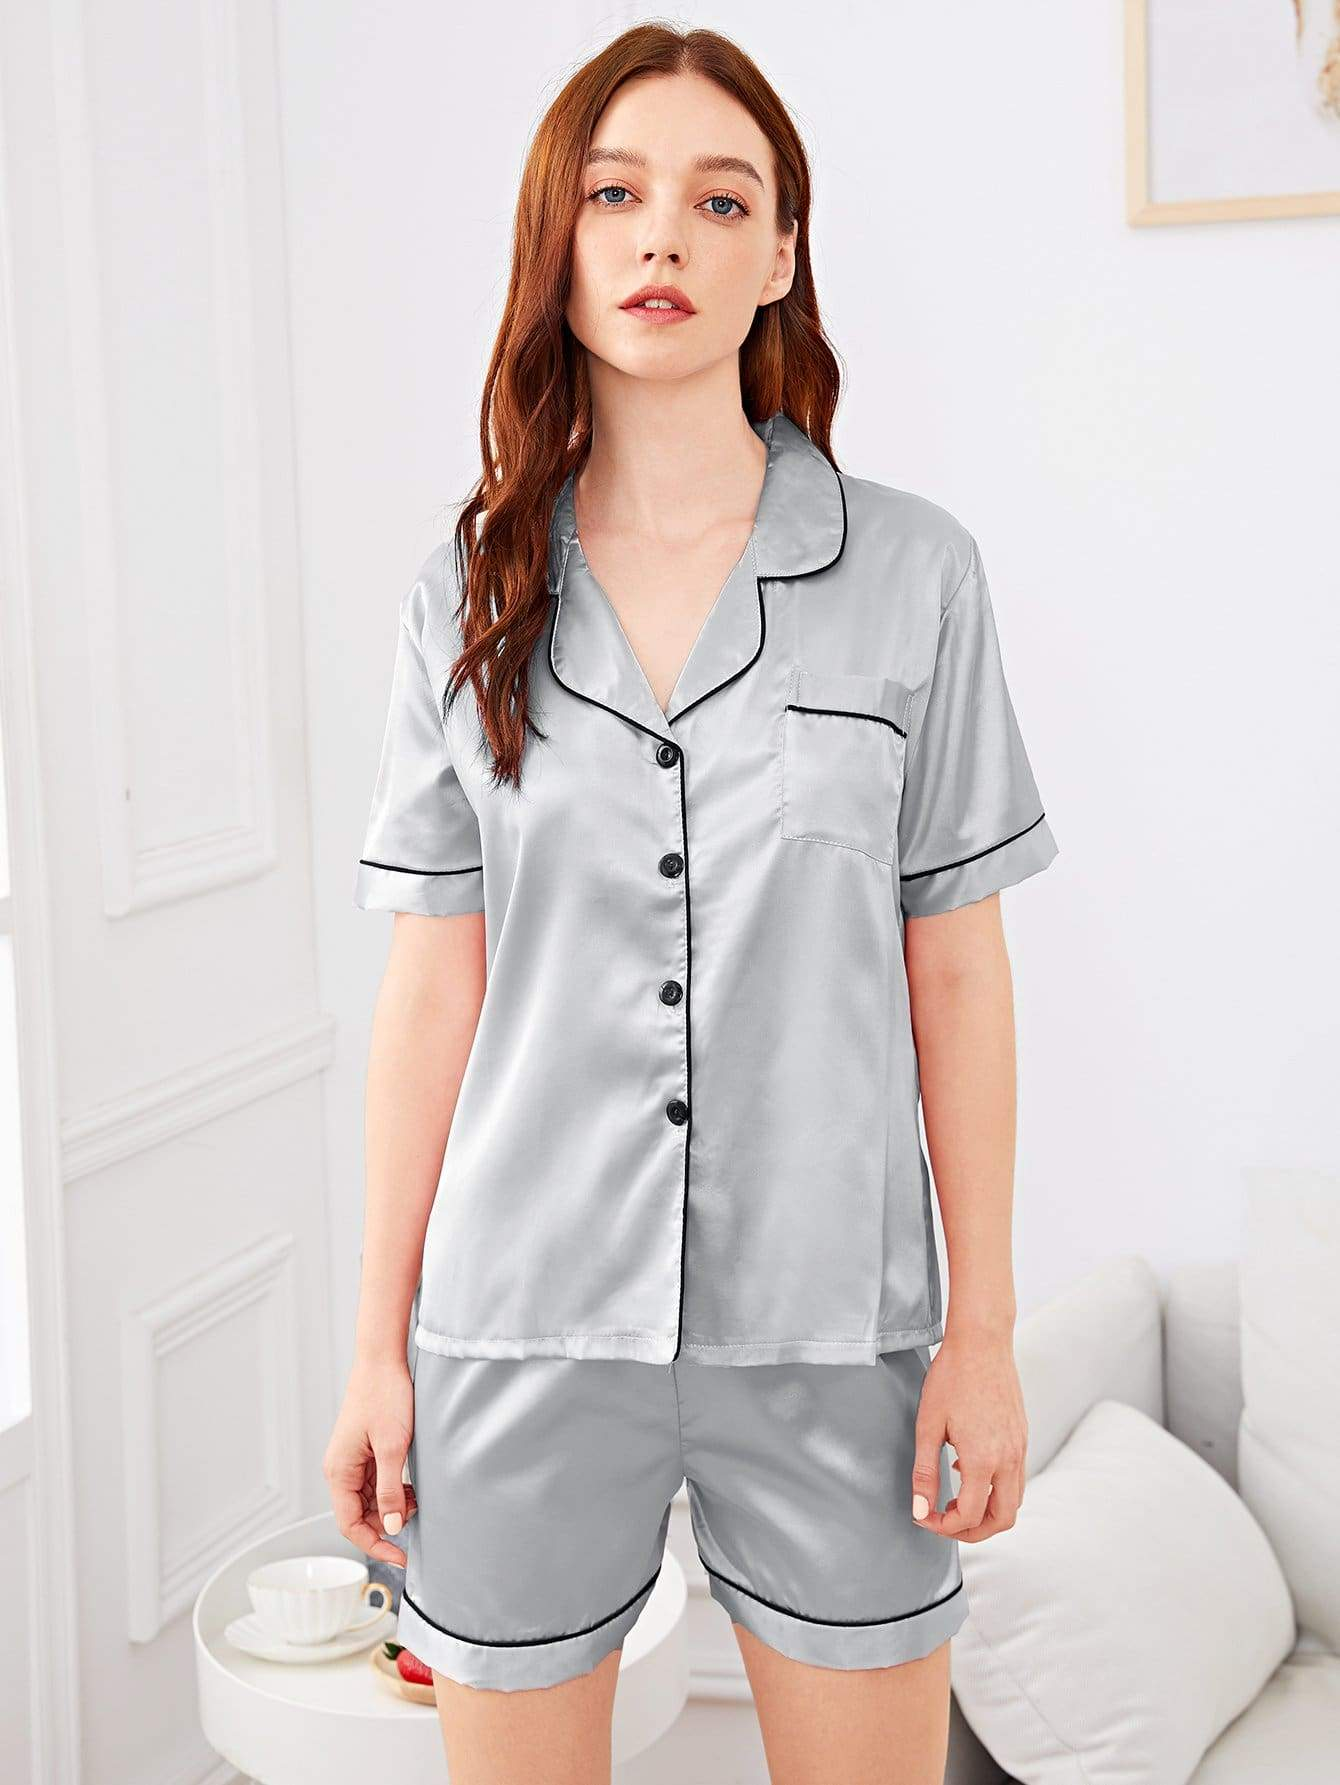 Contrast Binding Button-up Satin Pajama Set - FLJ CORPORATIONS